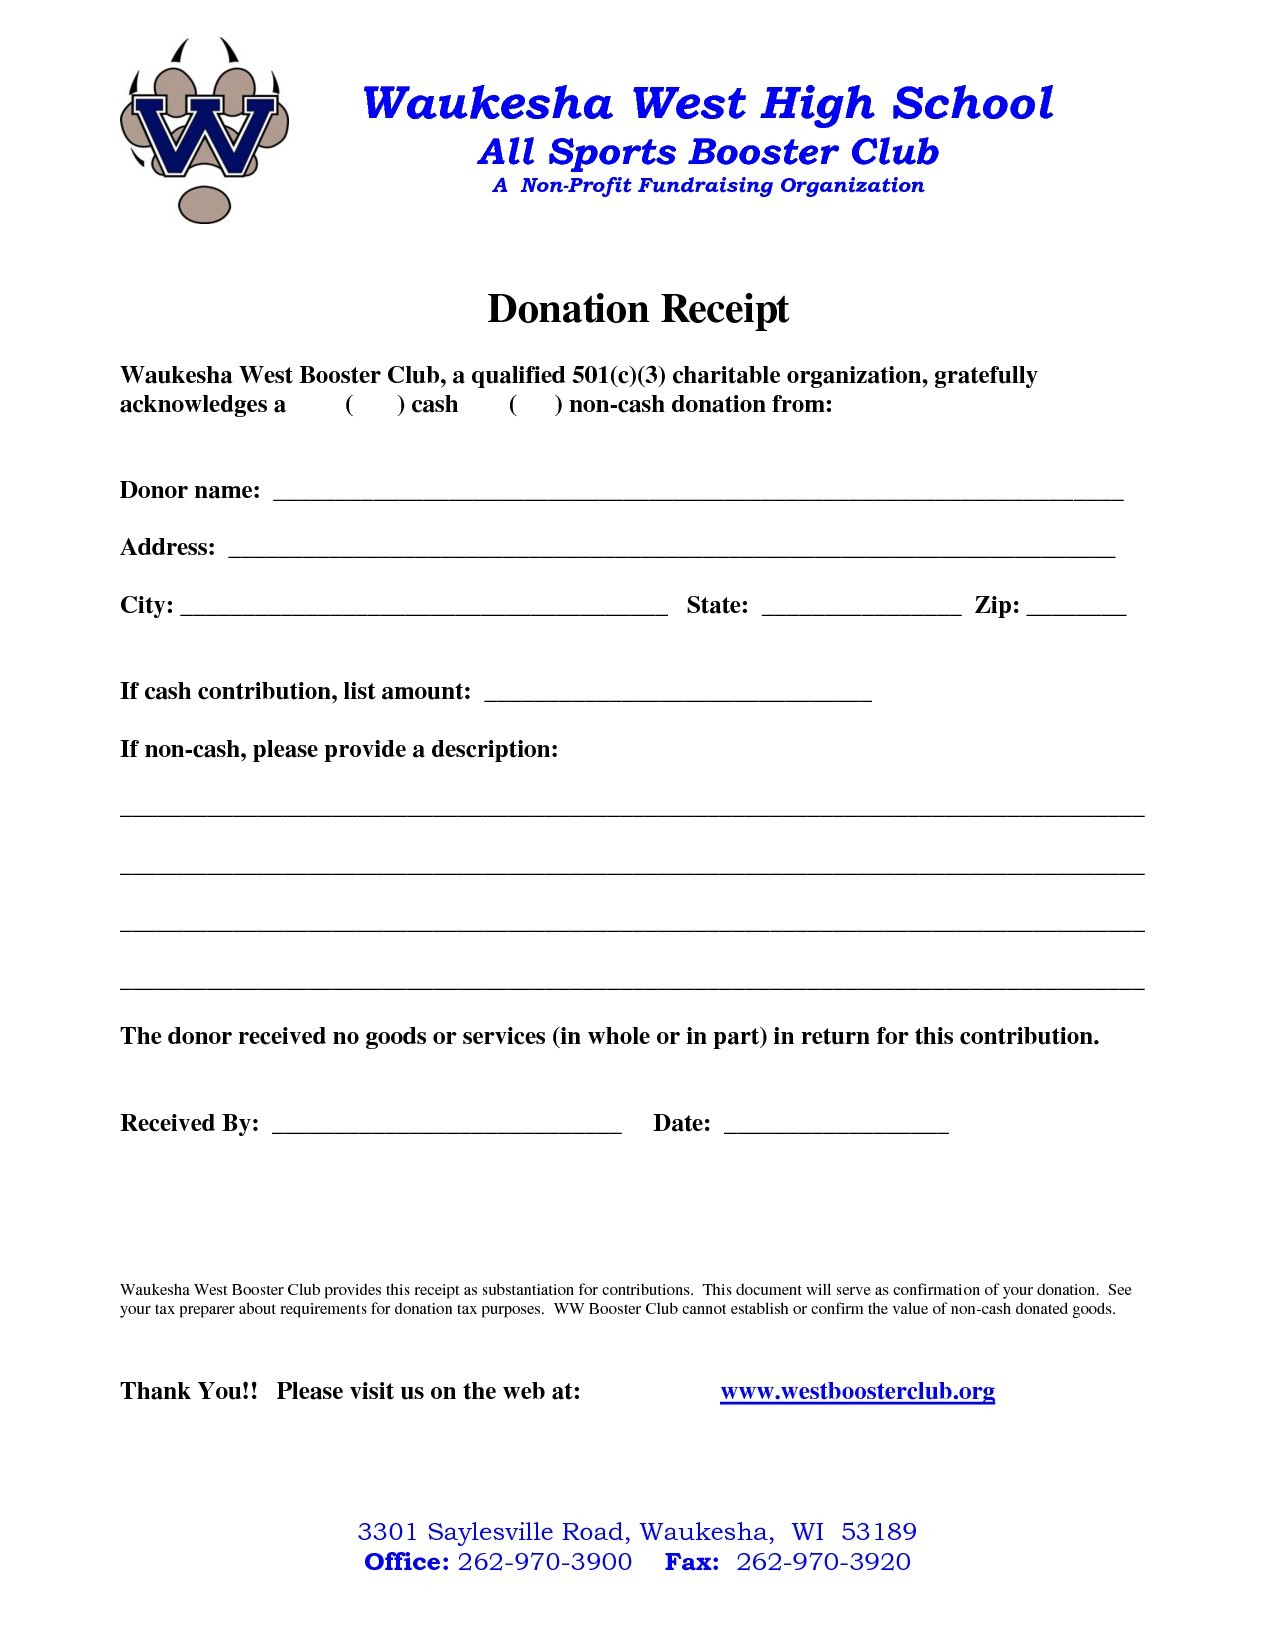 Non Profit Donation Receipt Letter Template - Donation Receipt Template New Awesome Non Profit Donation Receipt